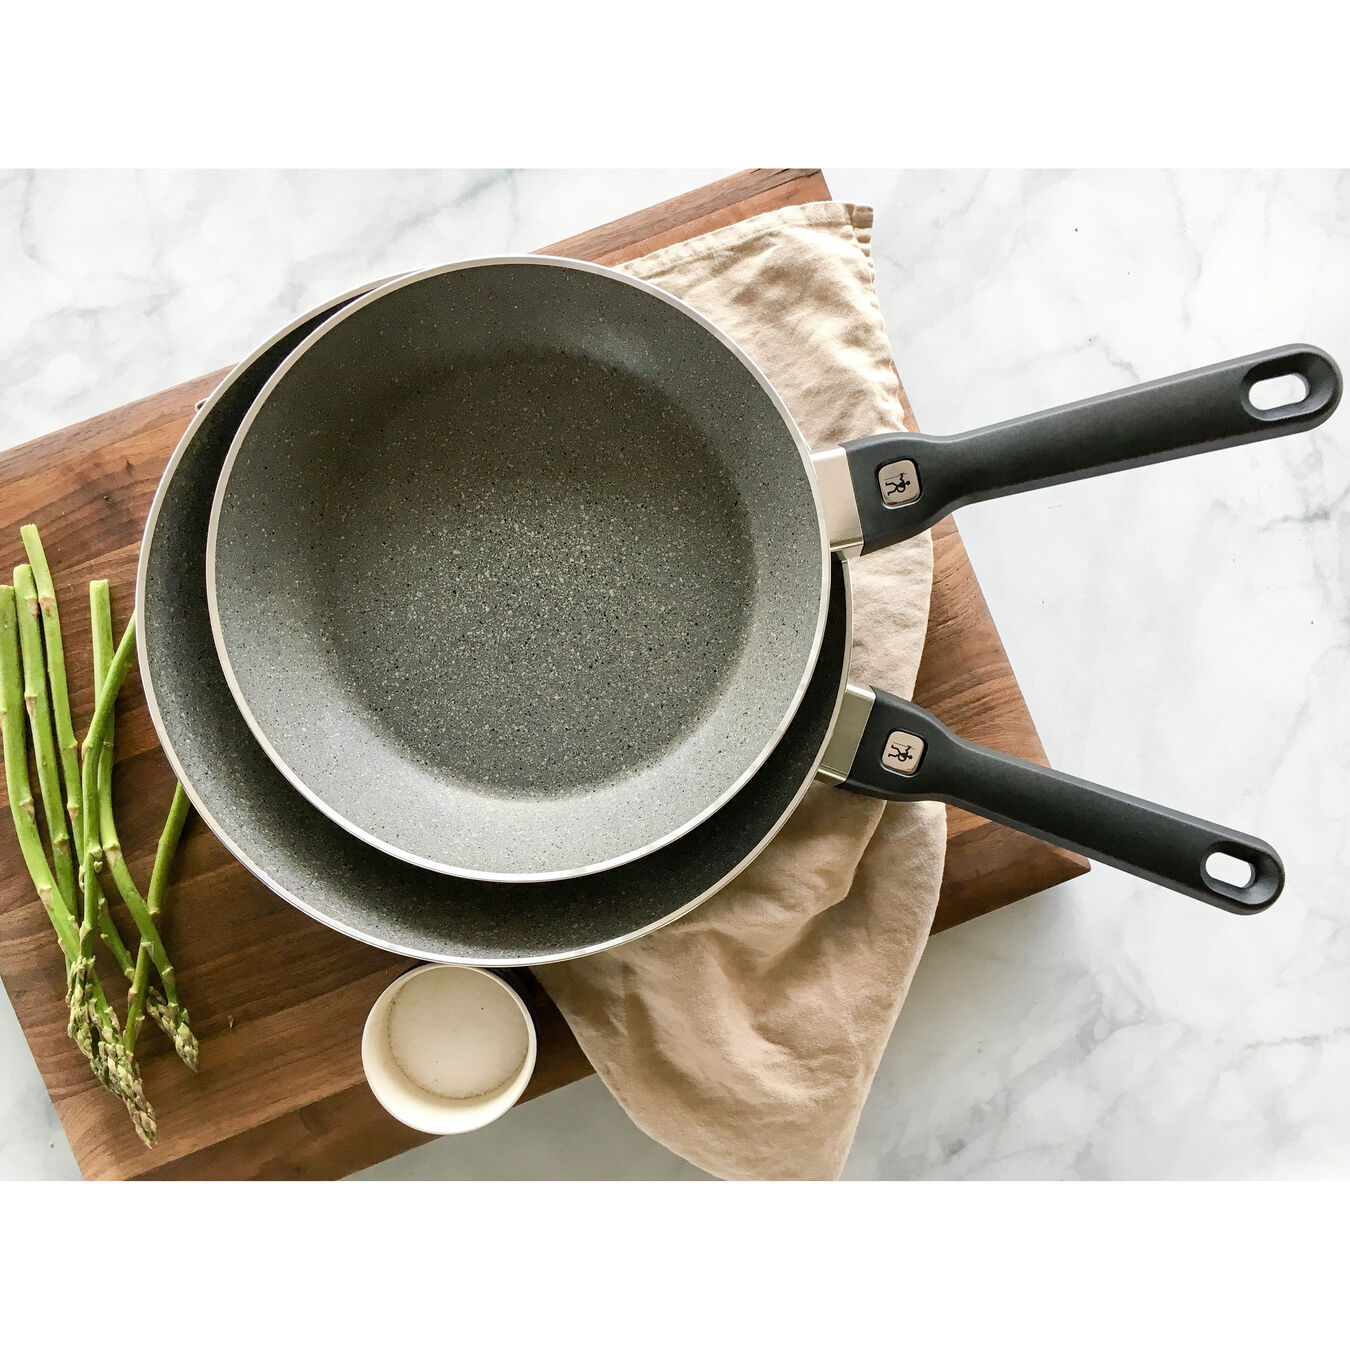 2-pc Aluminum Nonstick Fry Pan Set - Granite,,large 4